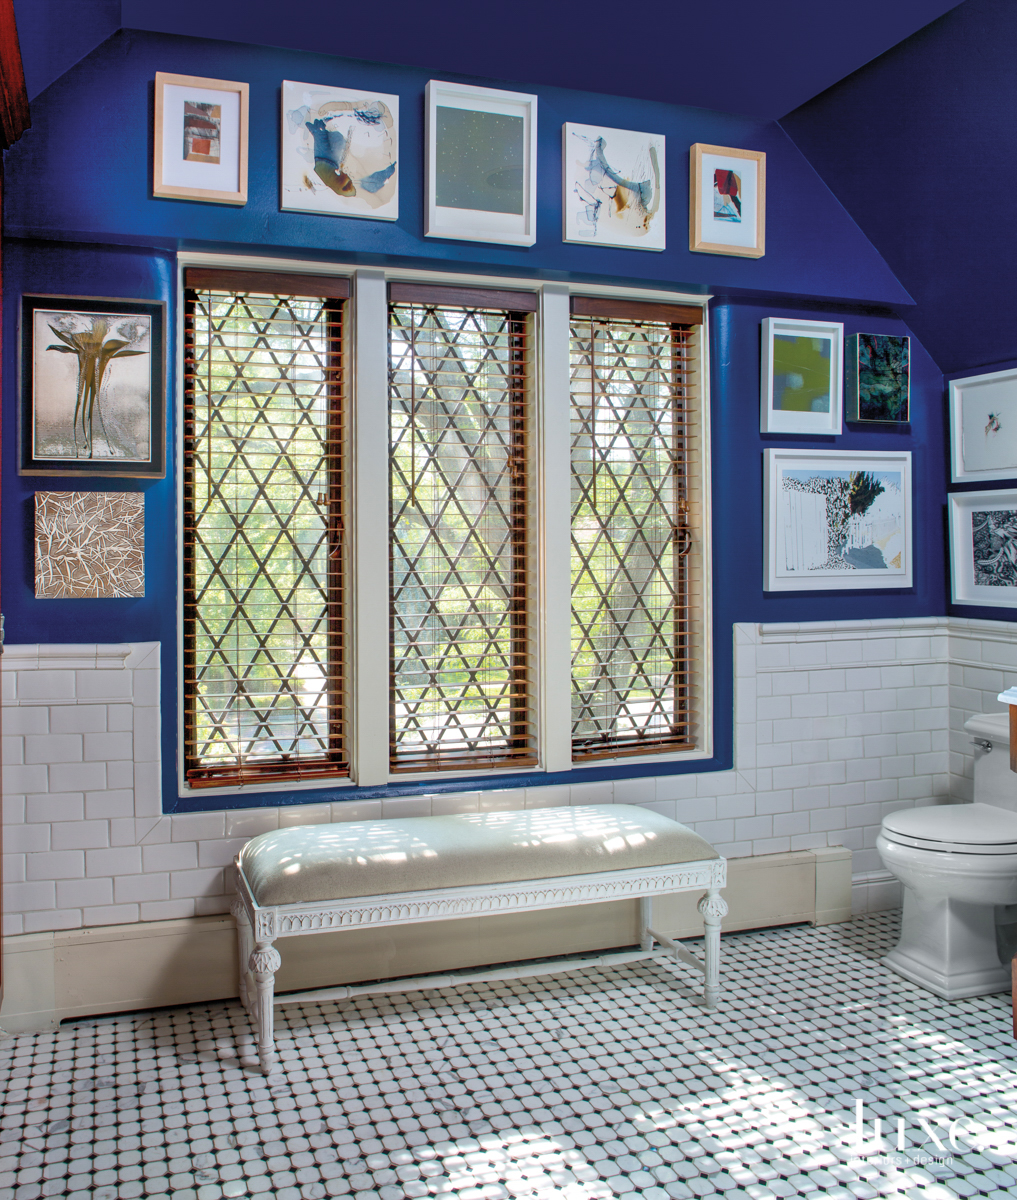 The master bathroom features a...